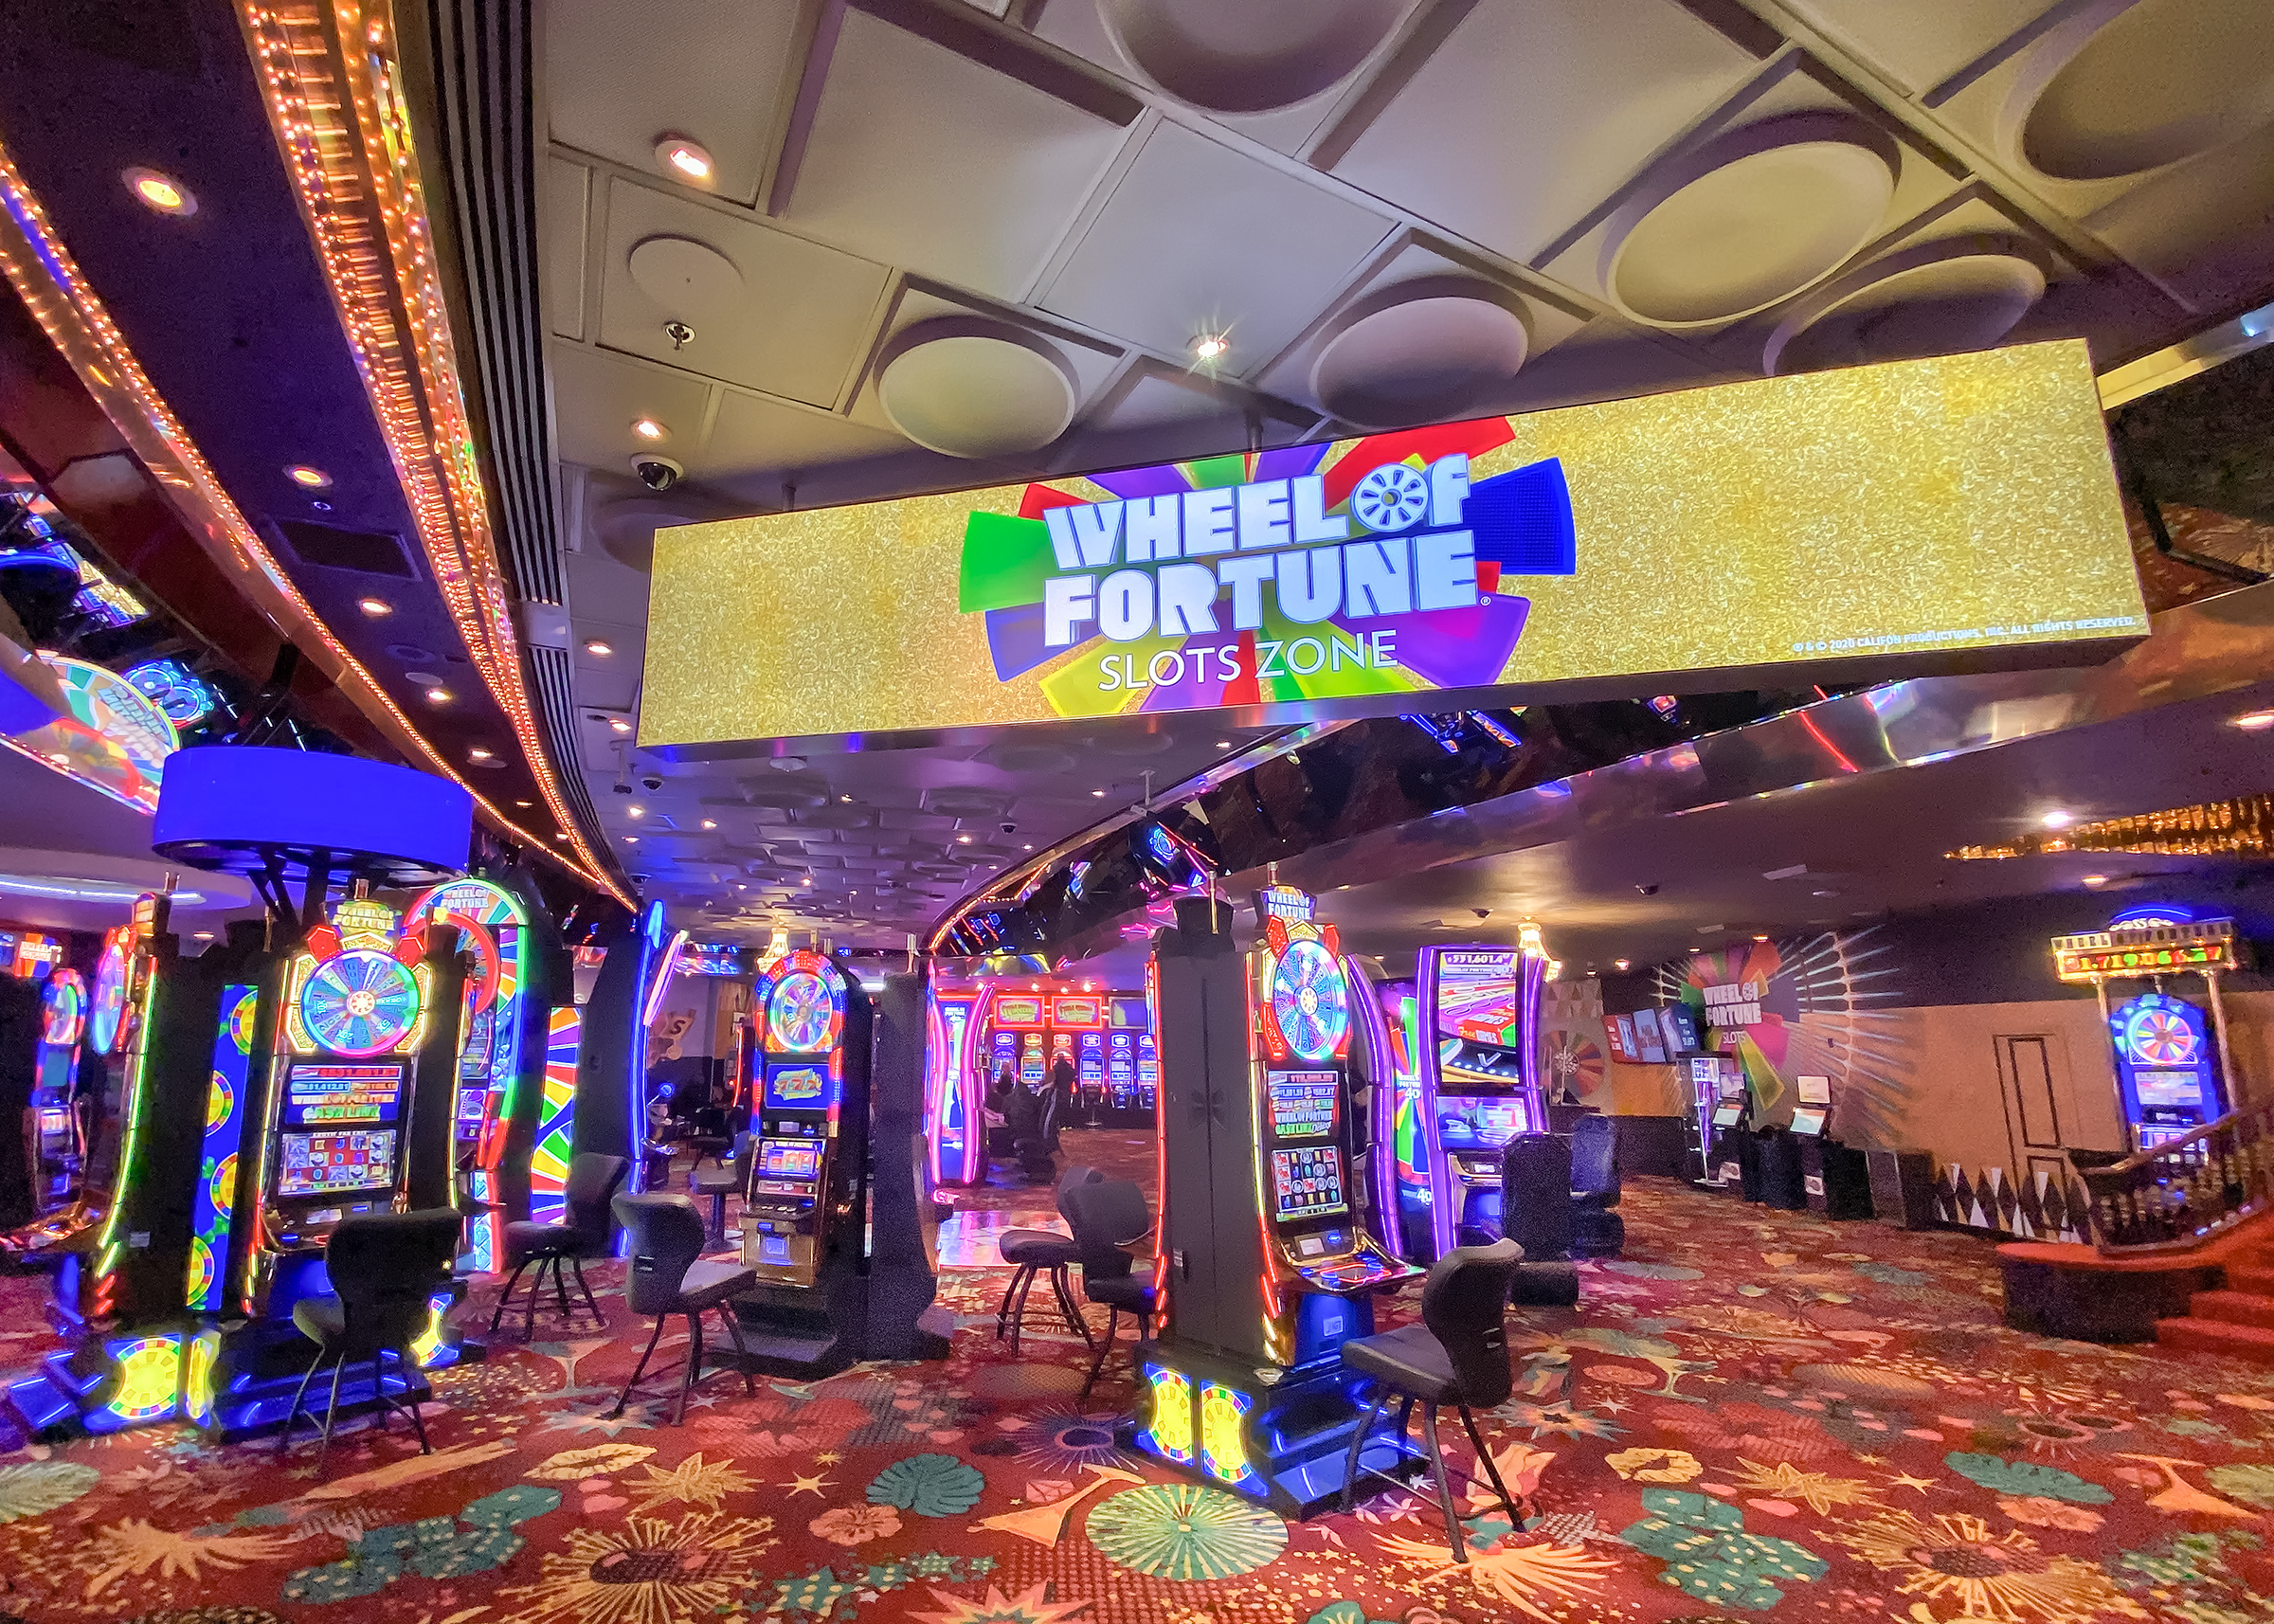 IGT and the Plaza Hotel & Casino Celebrate Life-Changing Jackpots with Las Vegas' Exclusive Wheel of Fortune® Slots Zone